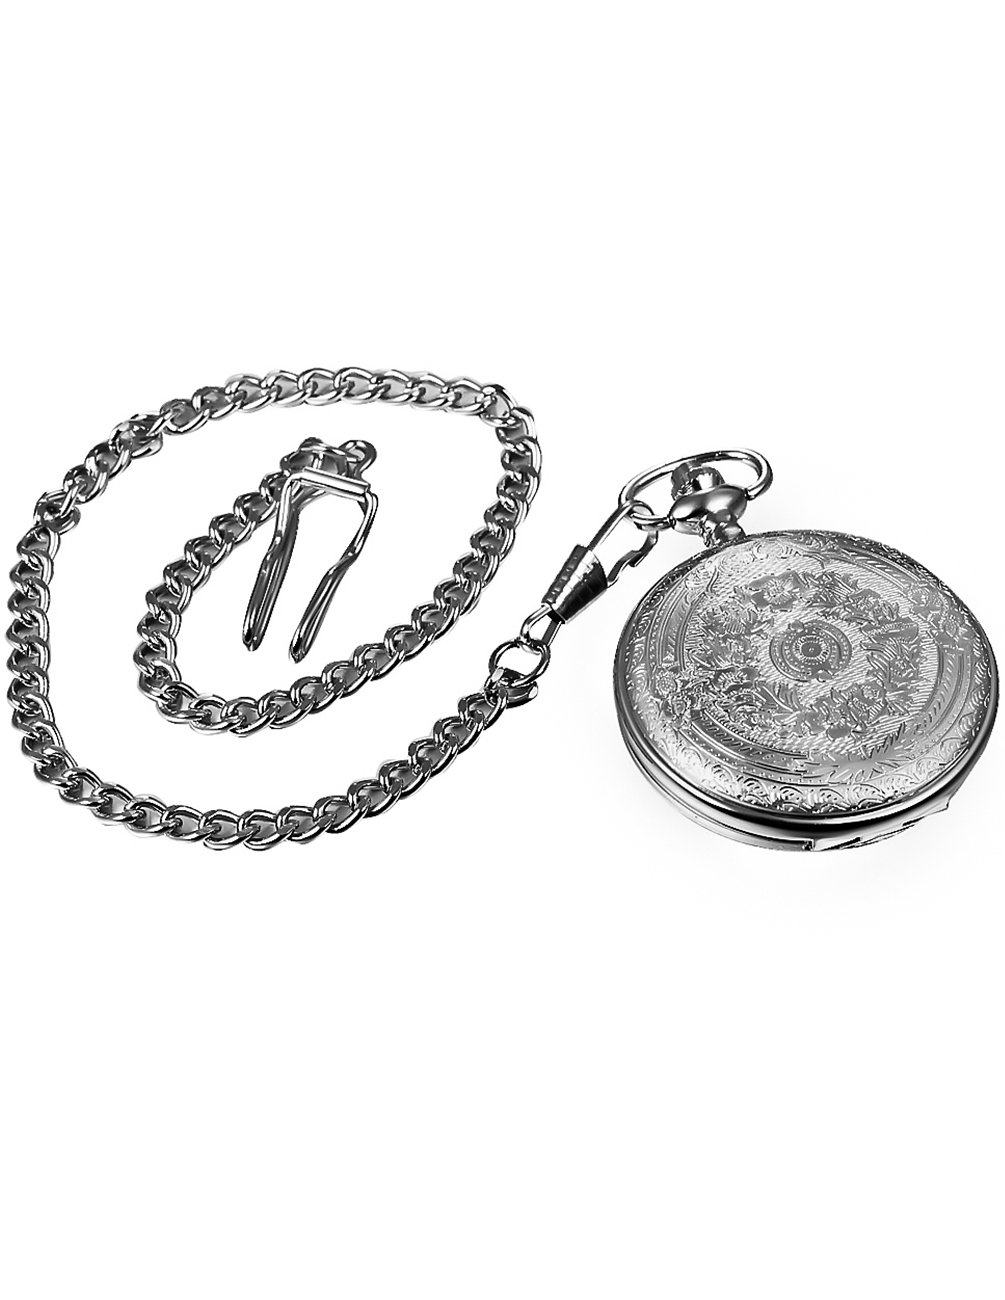 Mudder Vintage Silver Stainless Steel Quartz Pocket Watch Chain 5